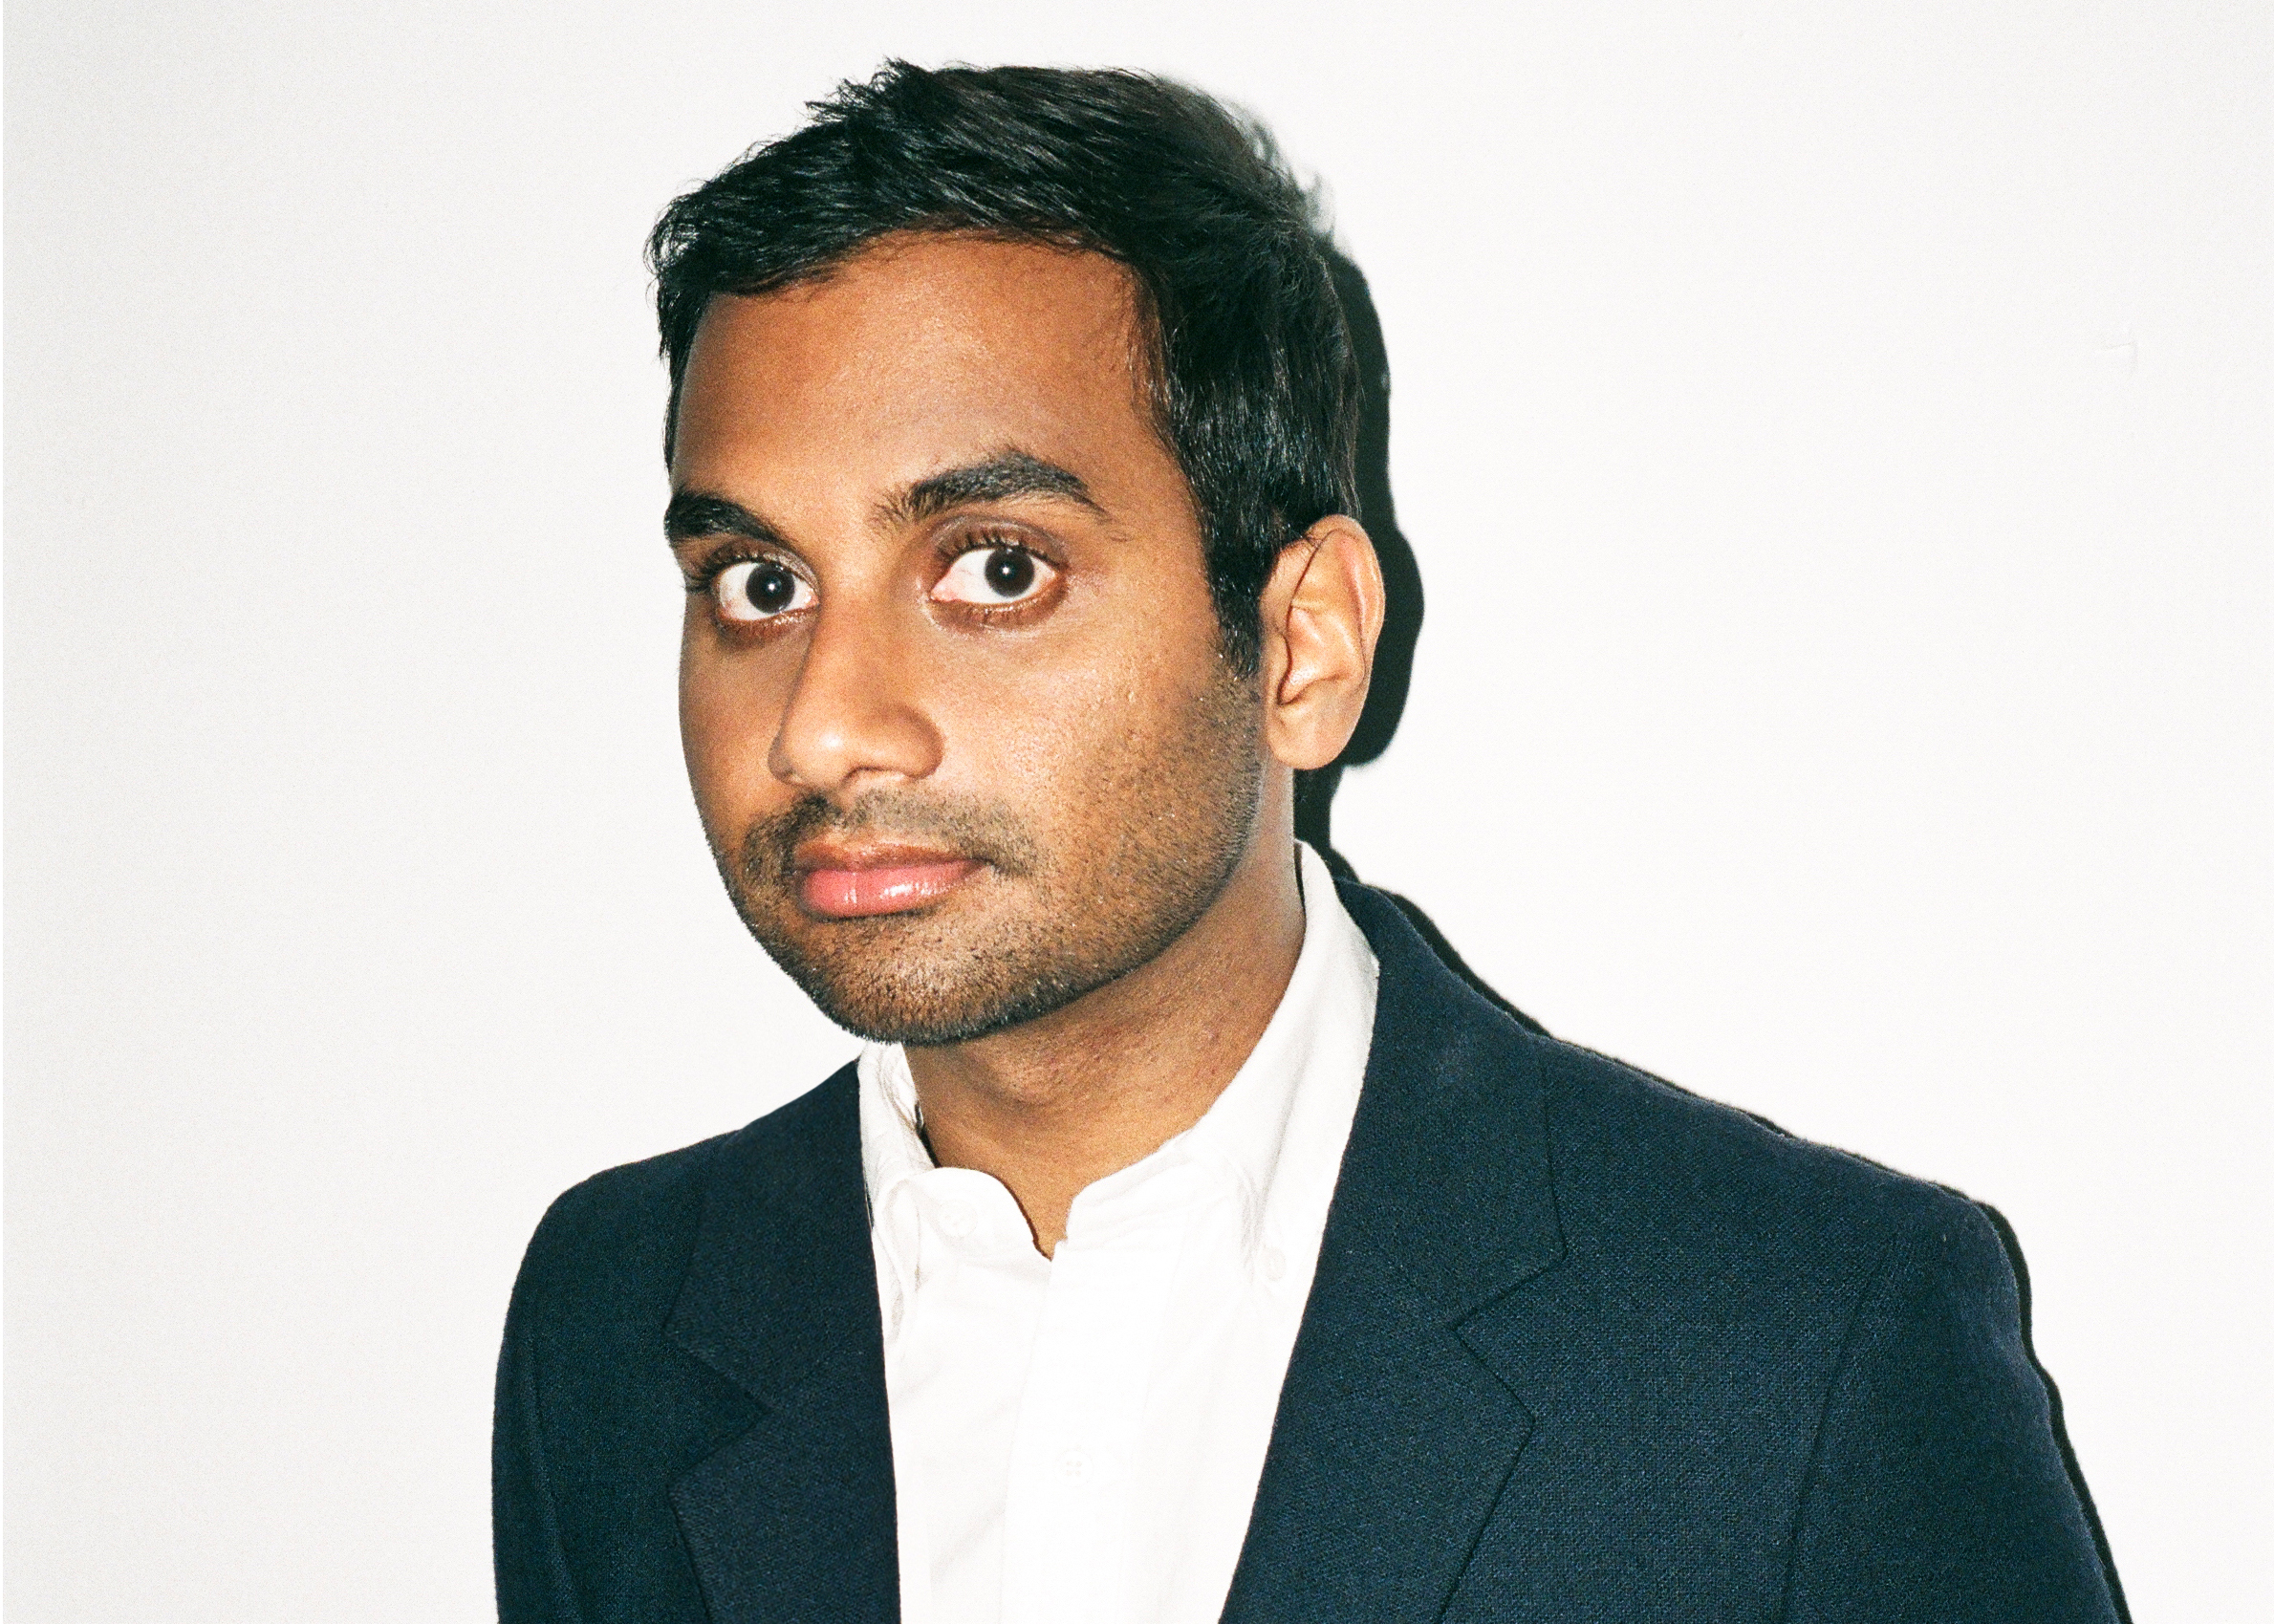 Aziz Ansari, the comedian and actor teamed up with a sociologist from New York University, Eric Klinenberg to take the pulse of global romance in the early 21st century.